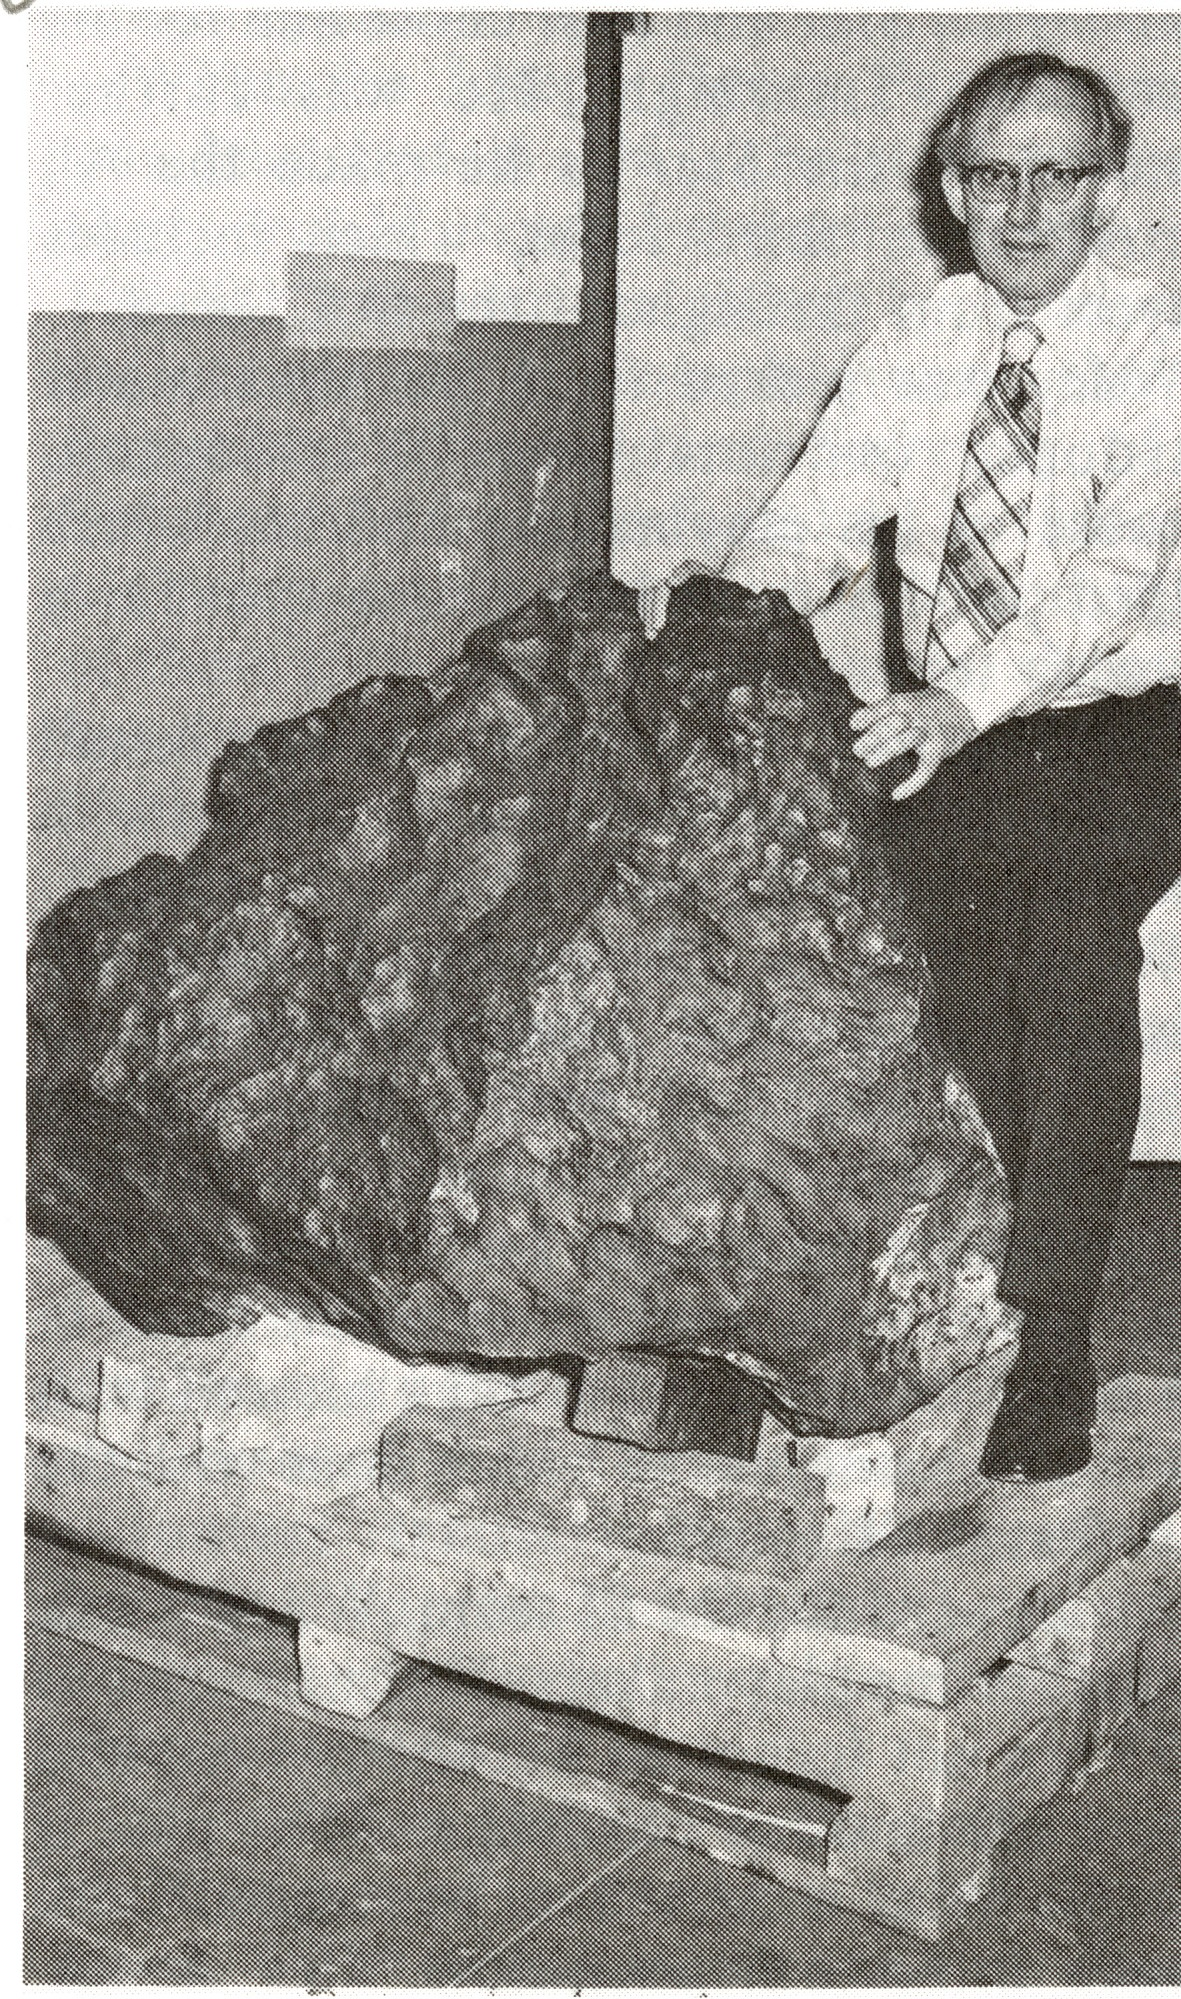 Curator Roy S. Clarke with Meteorite